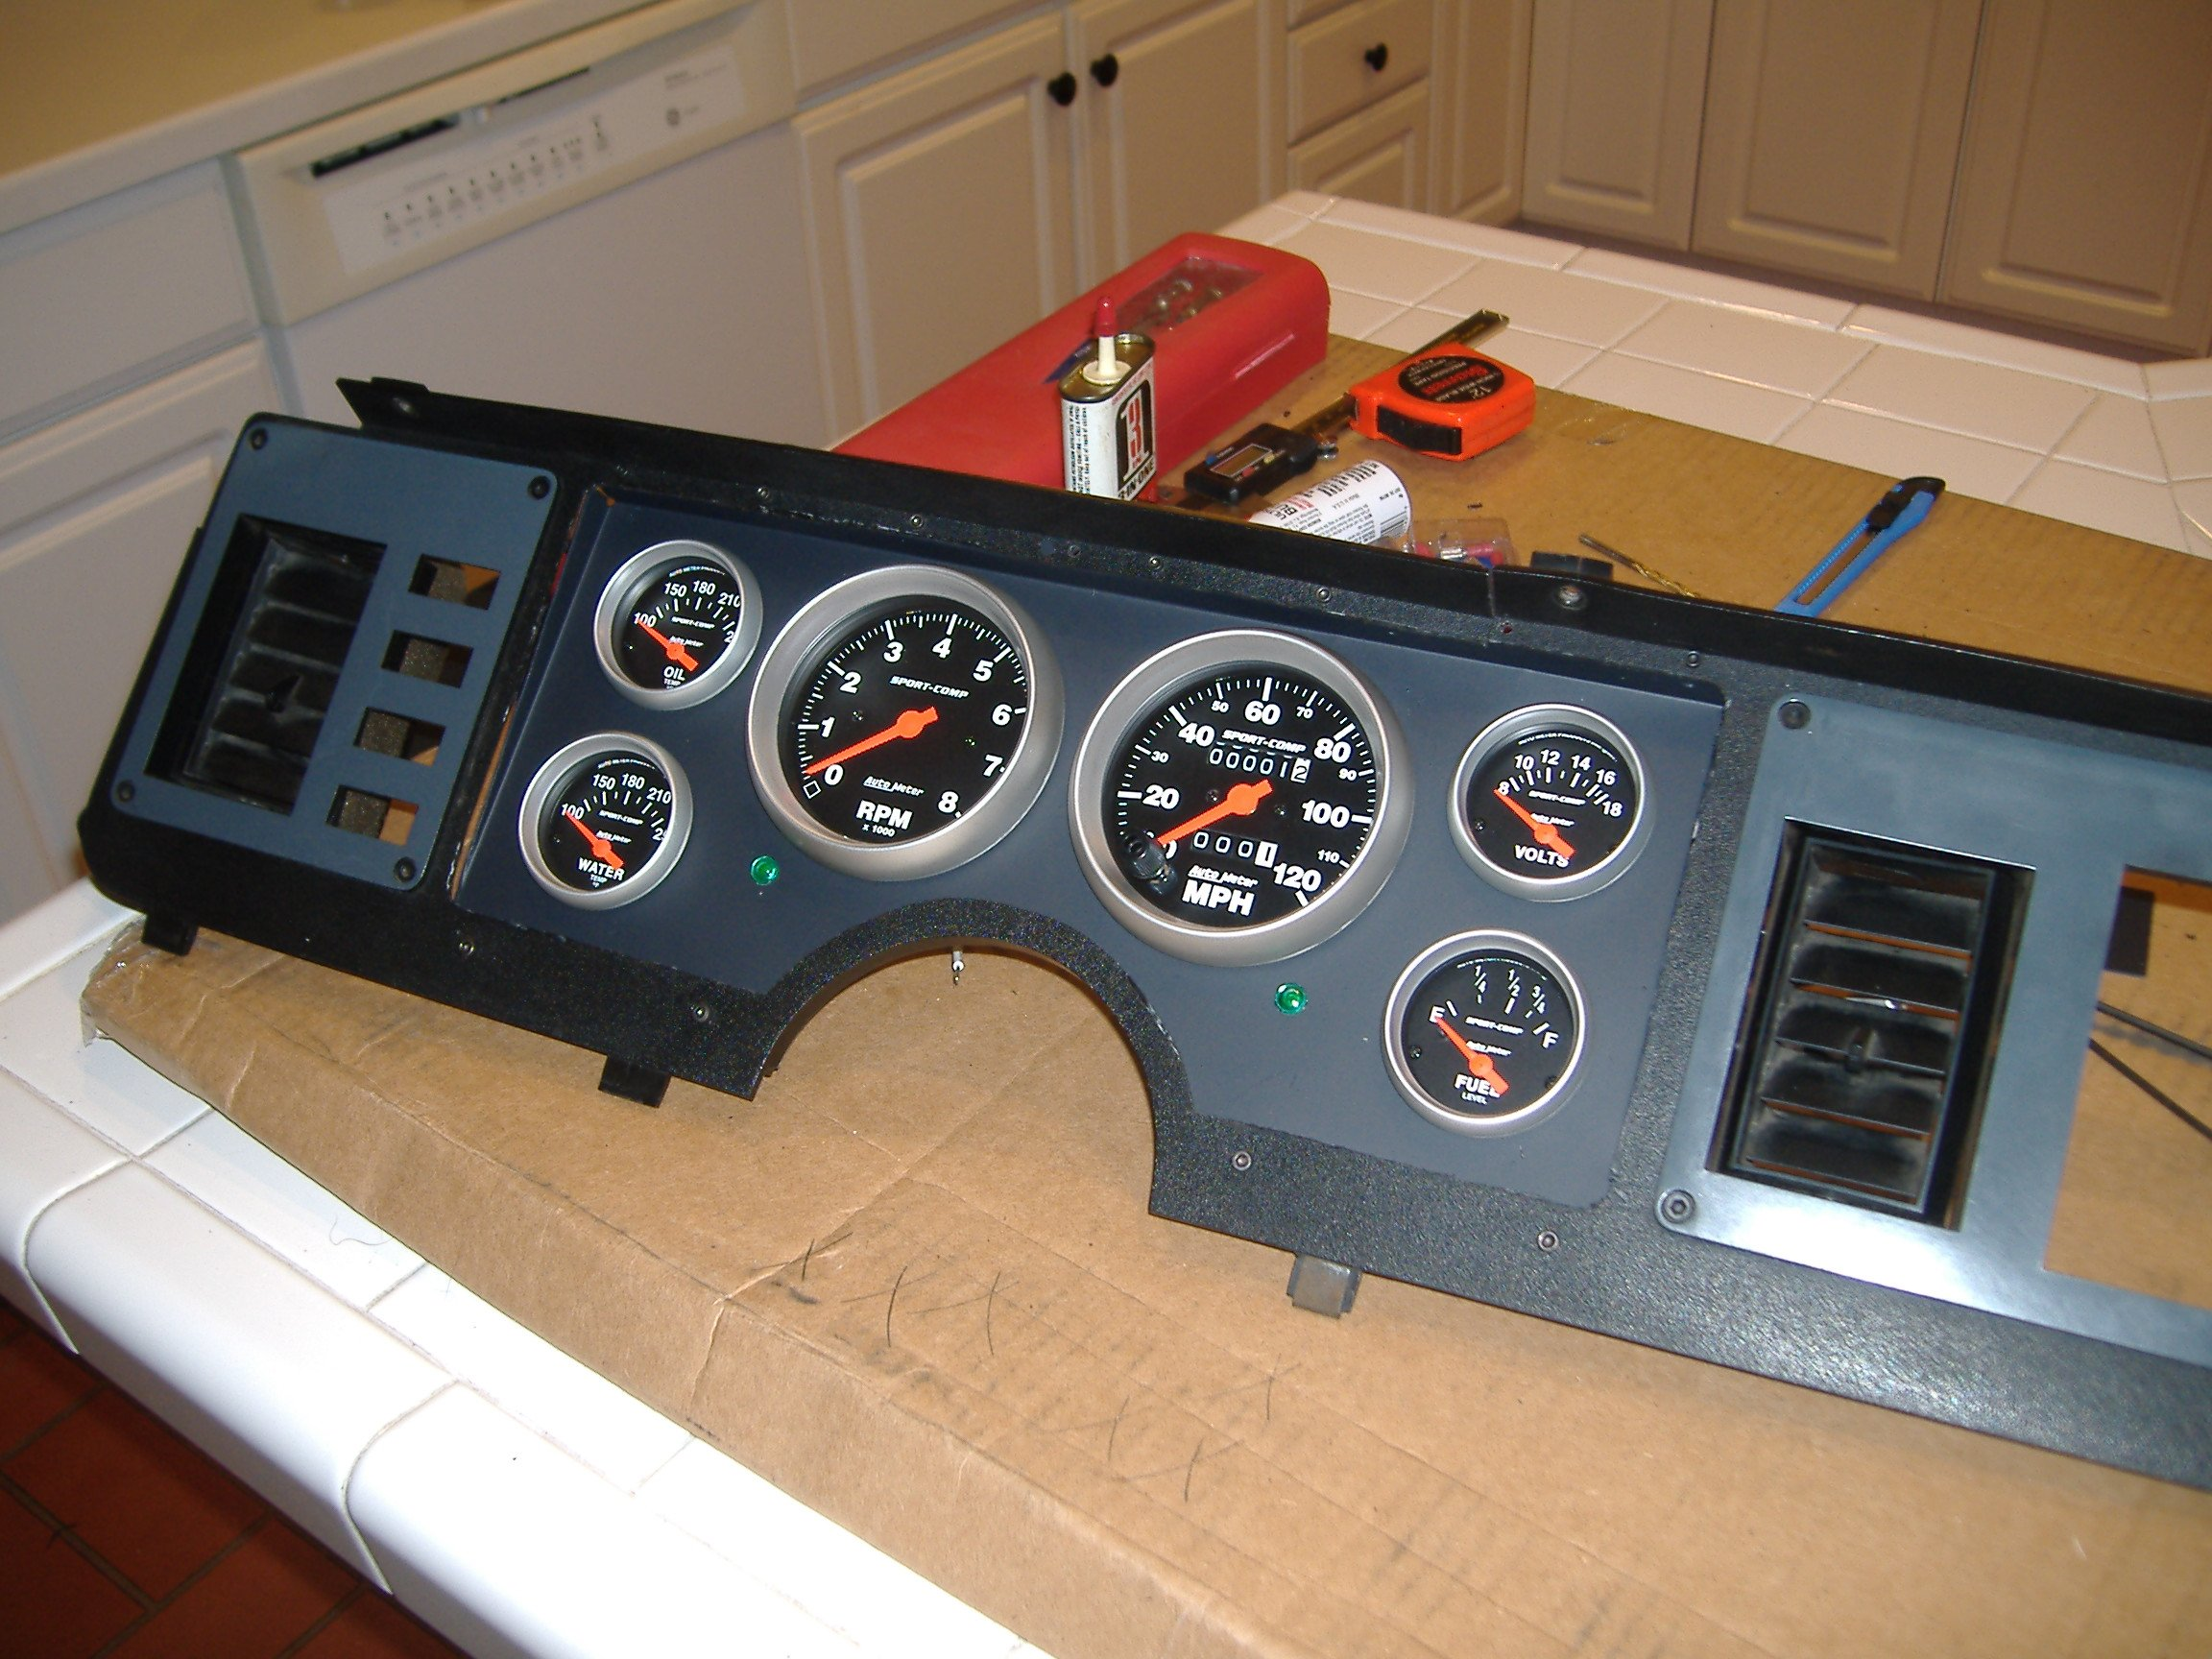 84103d1258937818 1986 mustang gt gauges panel assembled 1986 mustang gt gauges ford mustang forum Trailer Wiring Diagram at alyssarenee.co